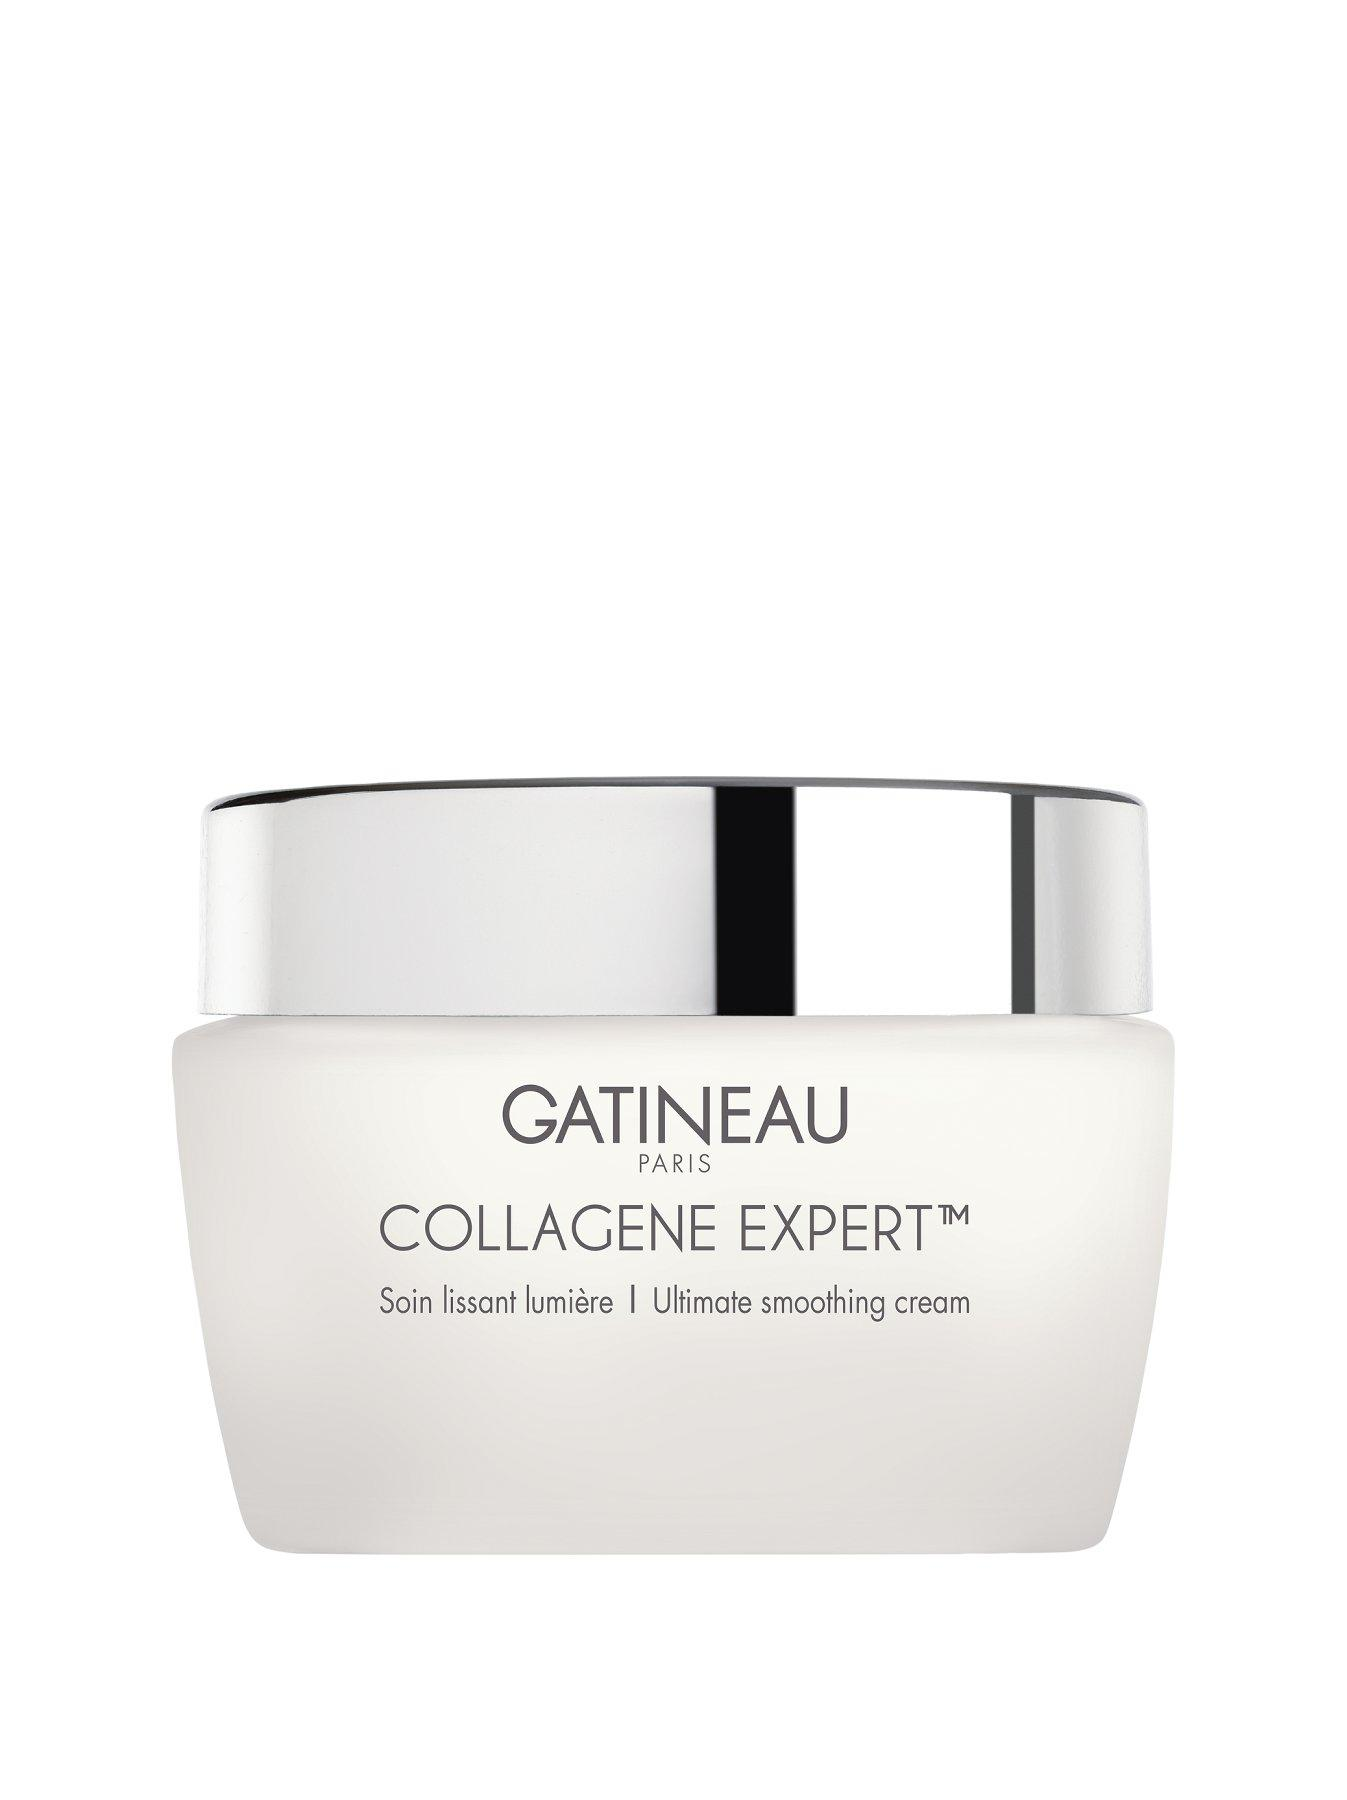 Gatineau Collagen Expert Smoothing Cream